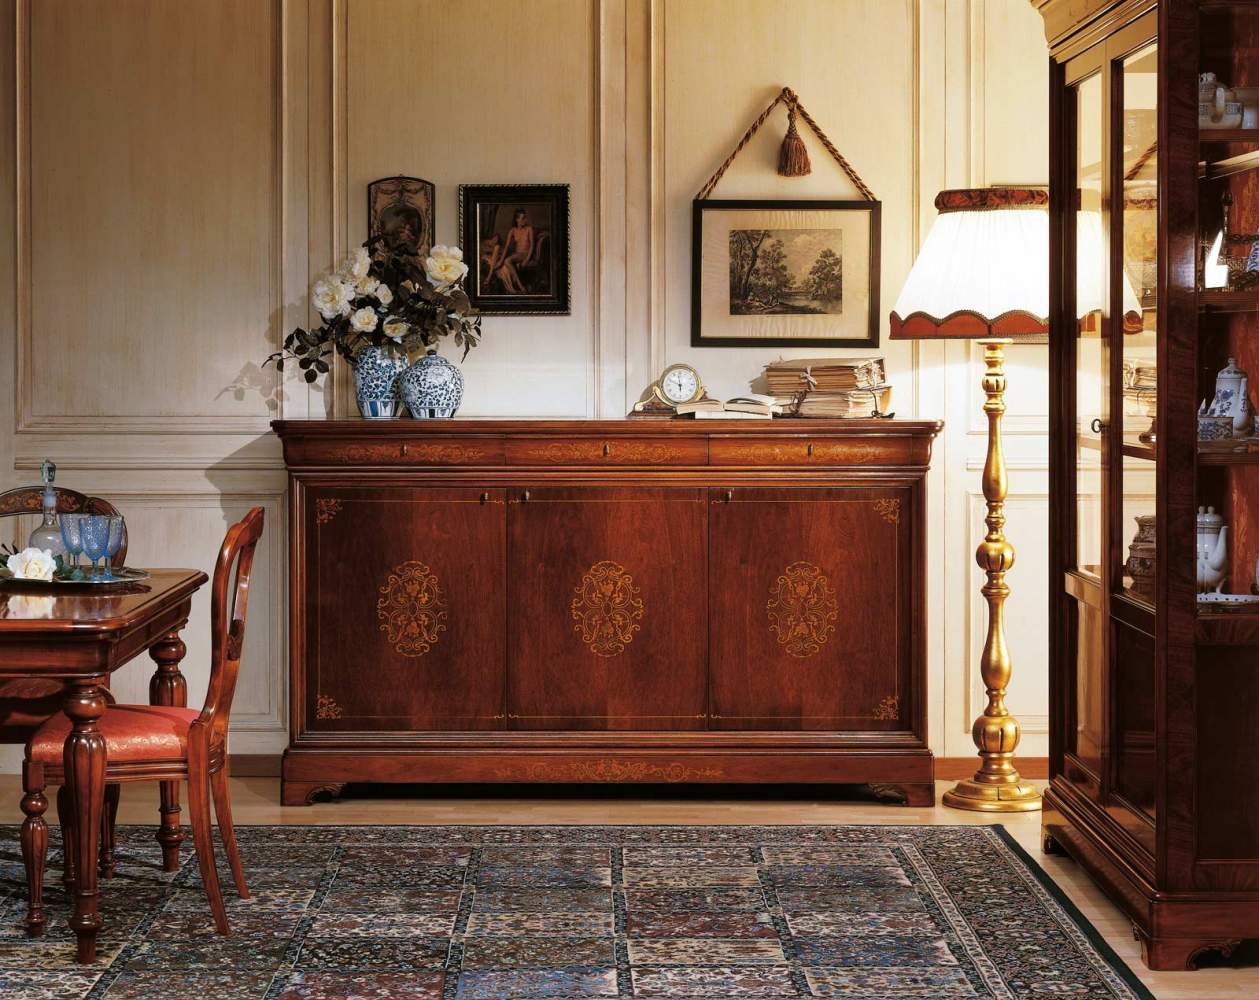 Sideboard in 19th century french style